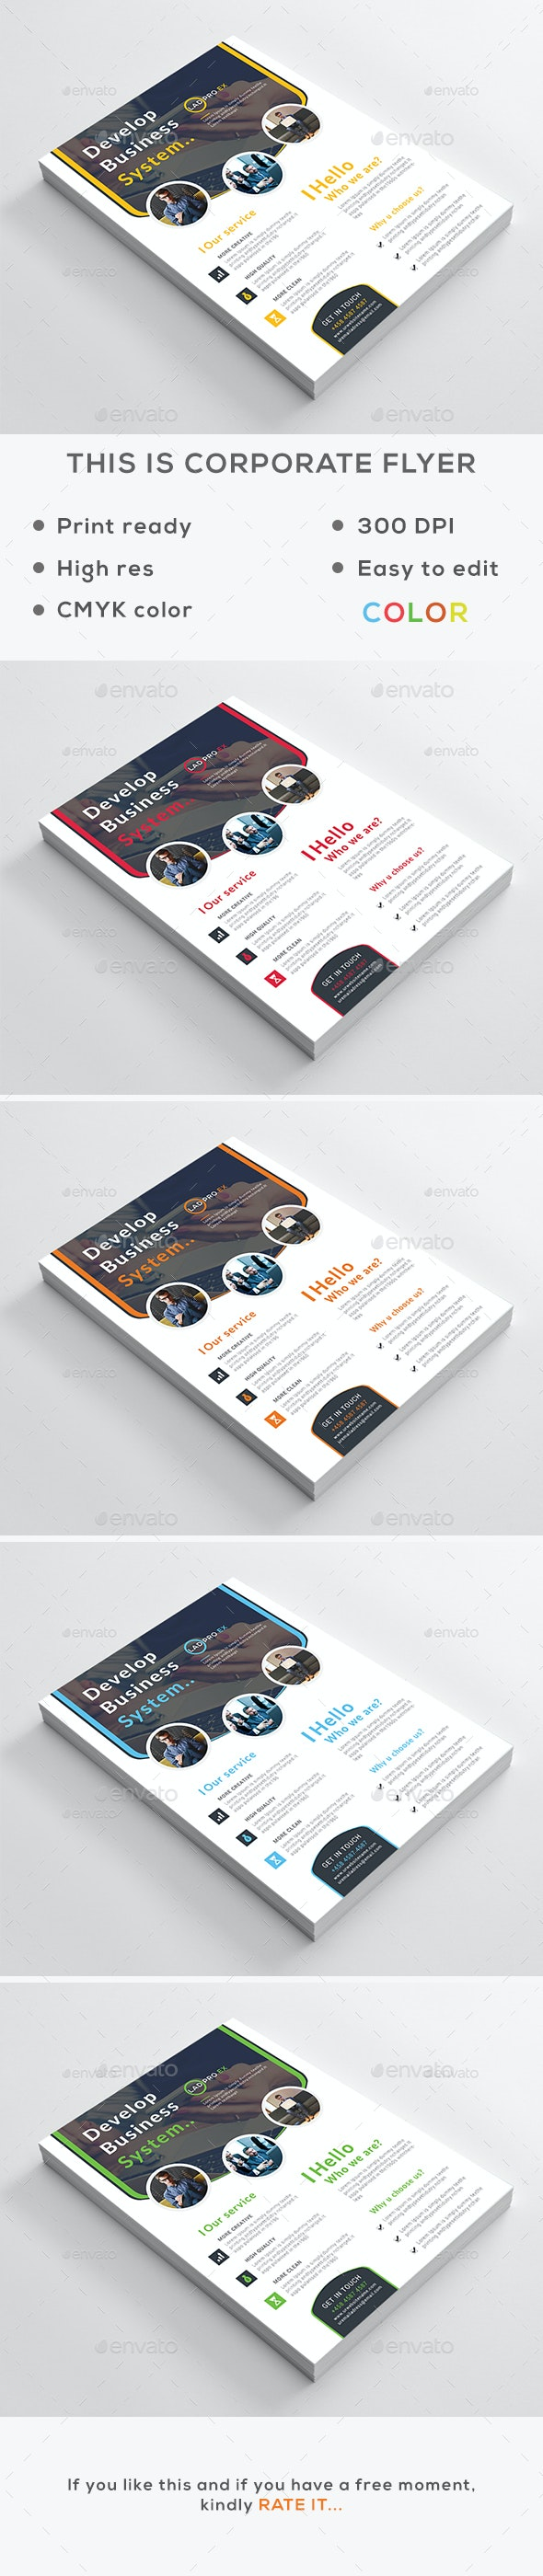 Corporate Flyer V2 - Corporate Flyers